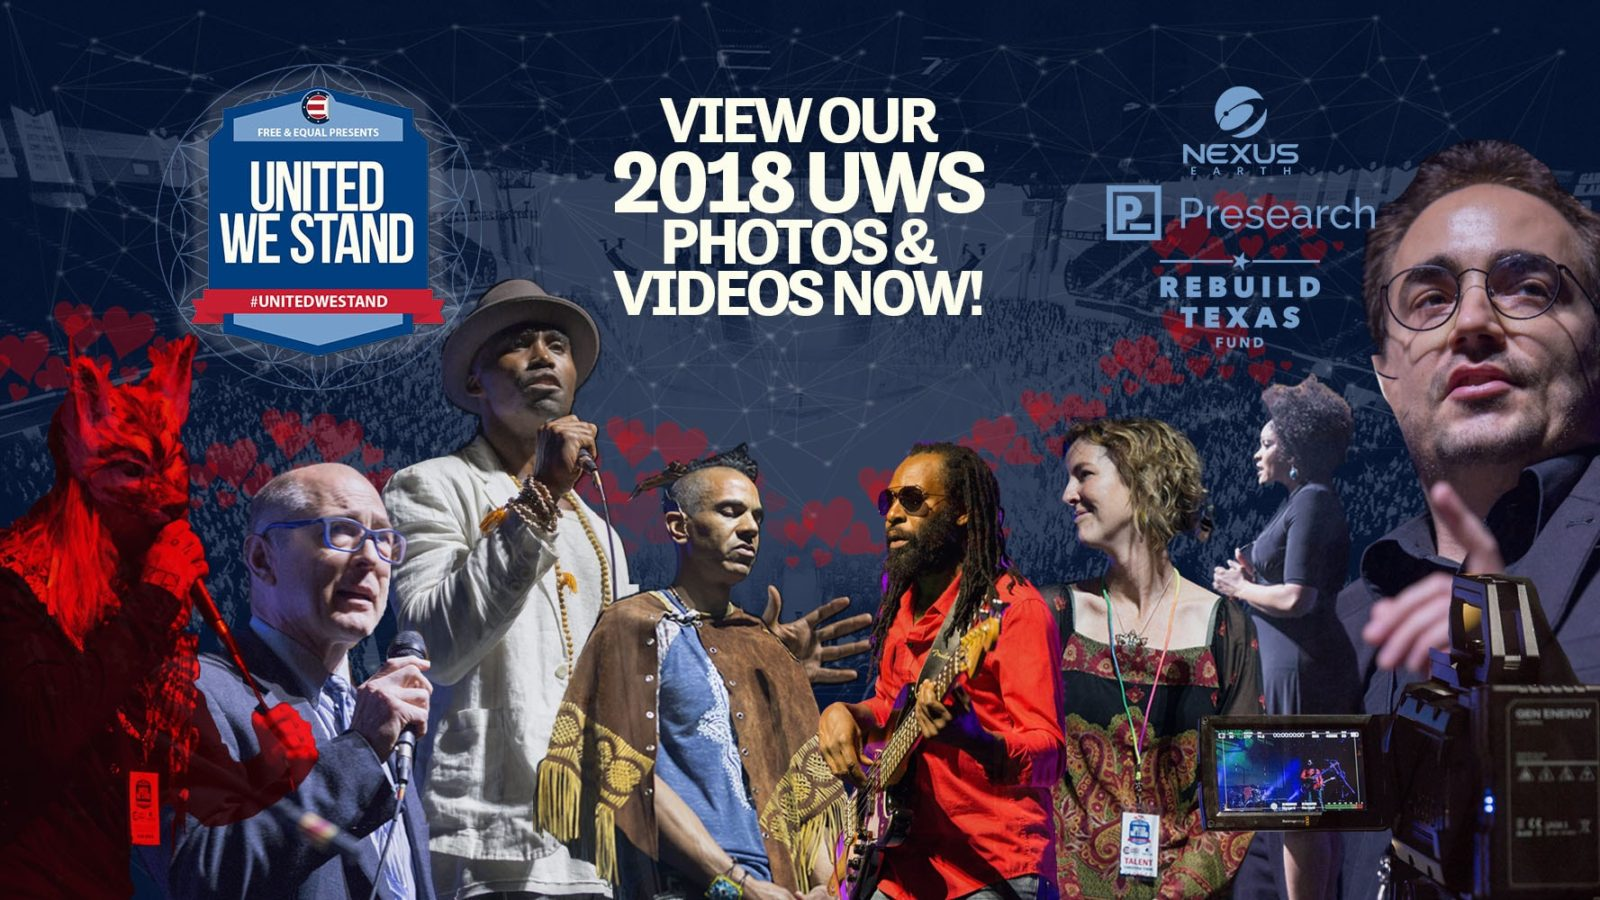 View Our 2018 United We Stand Photos & Videos